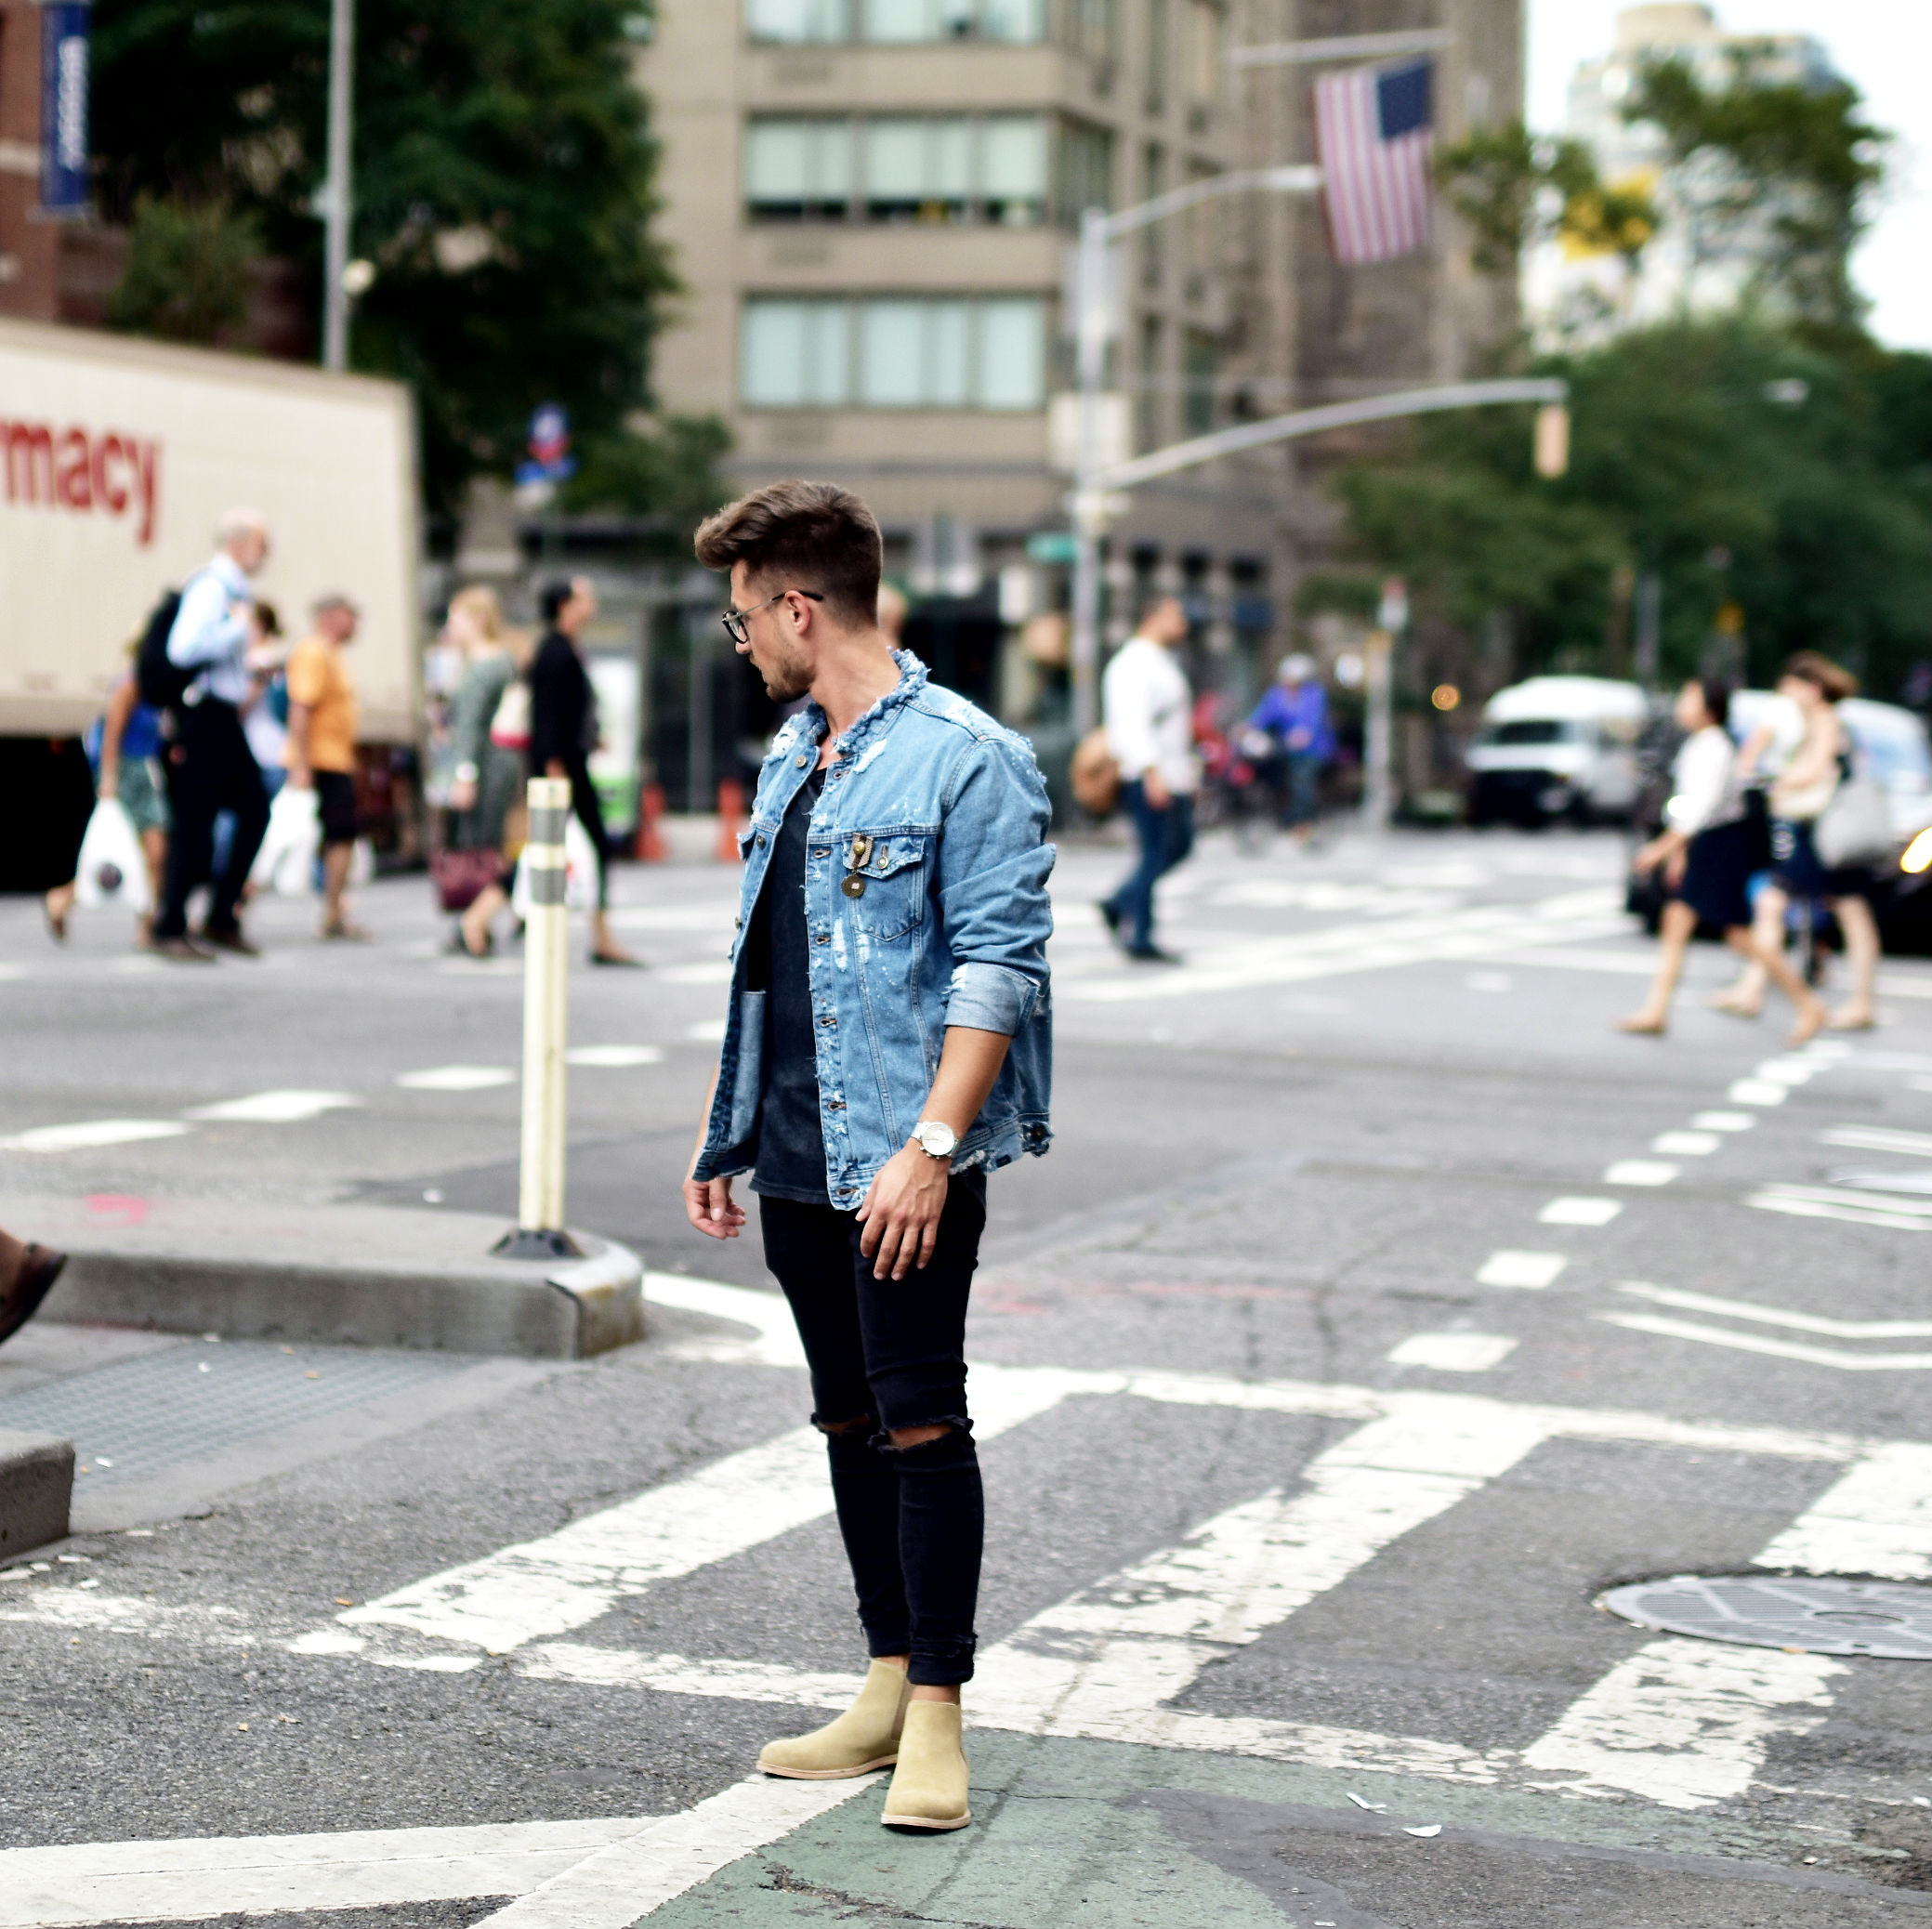 tommeezjerry-styleblog-maennerblog-maenner-modeblog-berlin-berlinblog-maennermodeblog-outfit-new-york-streetstyle-fashion-week-casual-streetstyle-looks